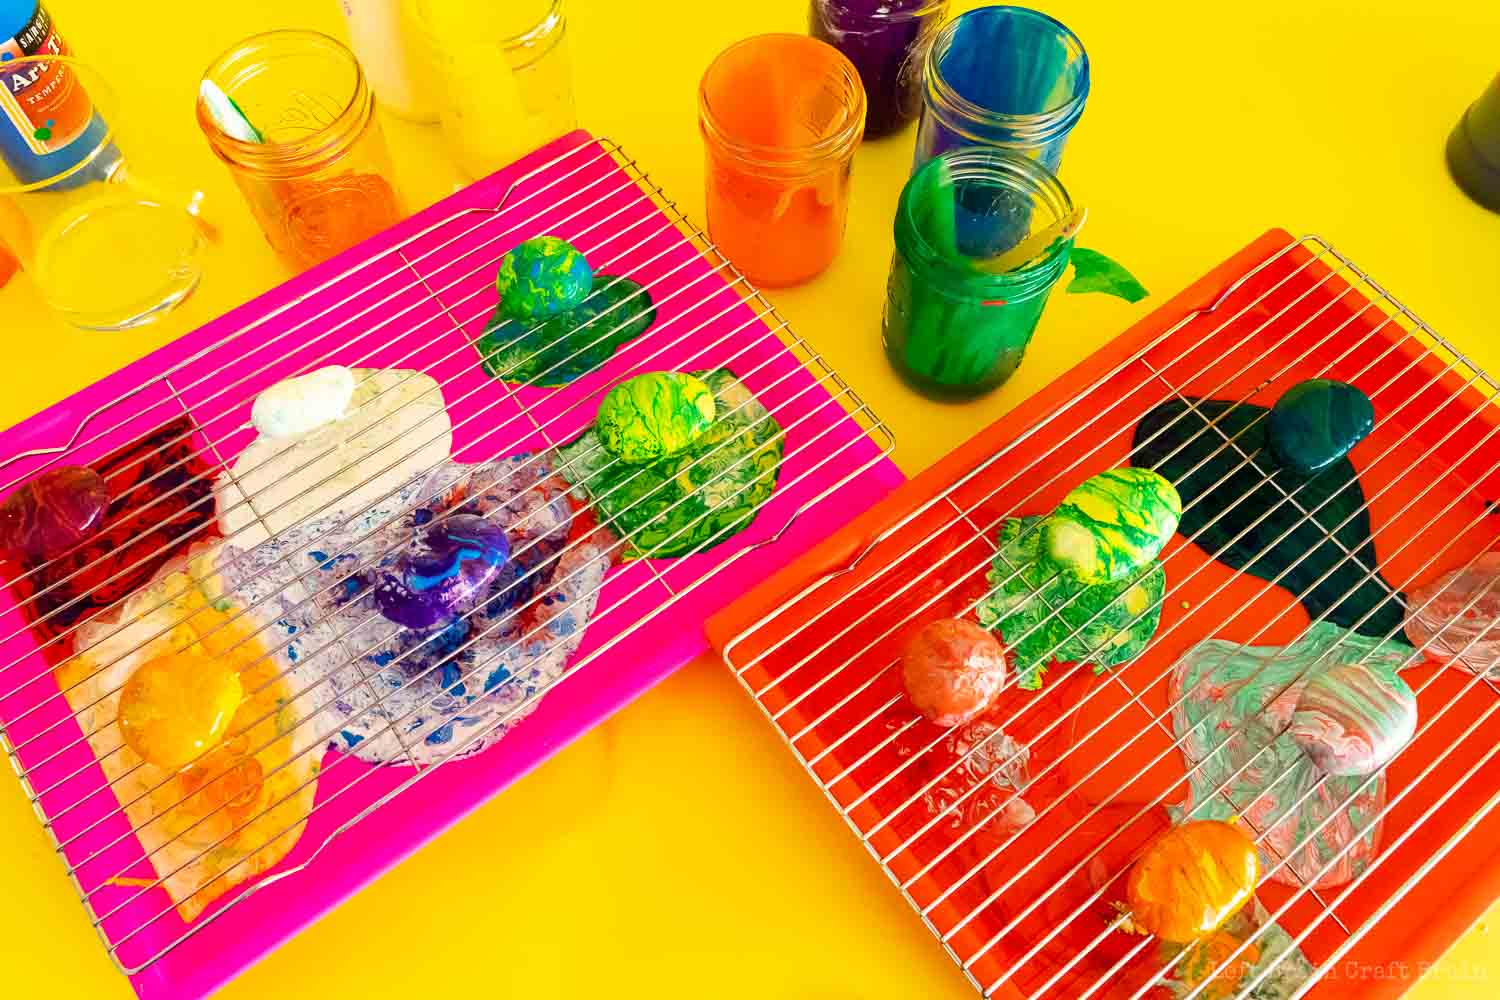 pour painted garden rocks on wire rocks on trays with jars of paint